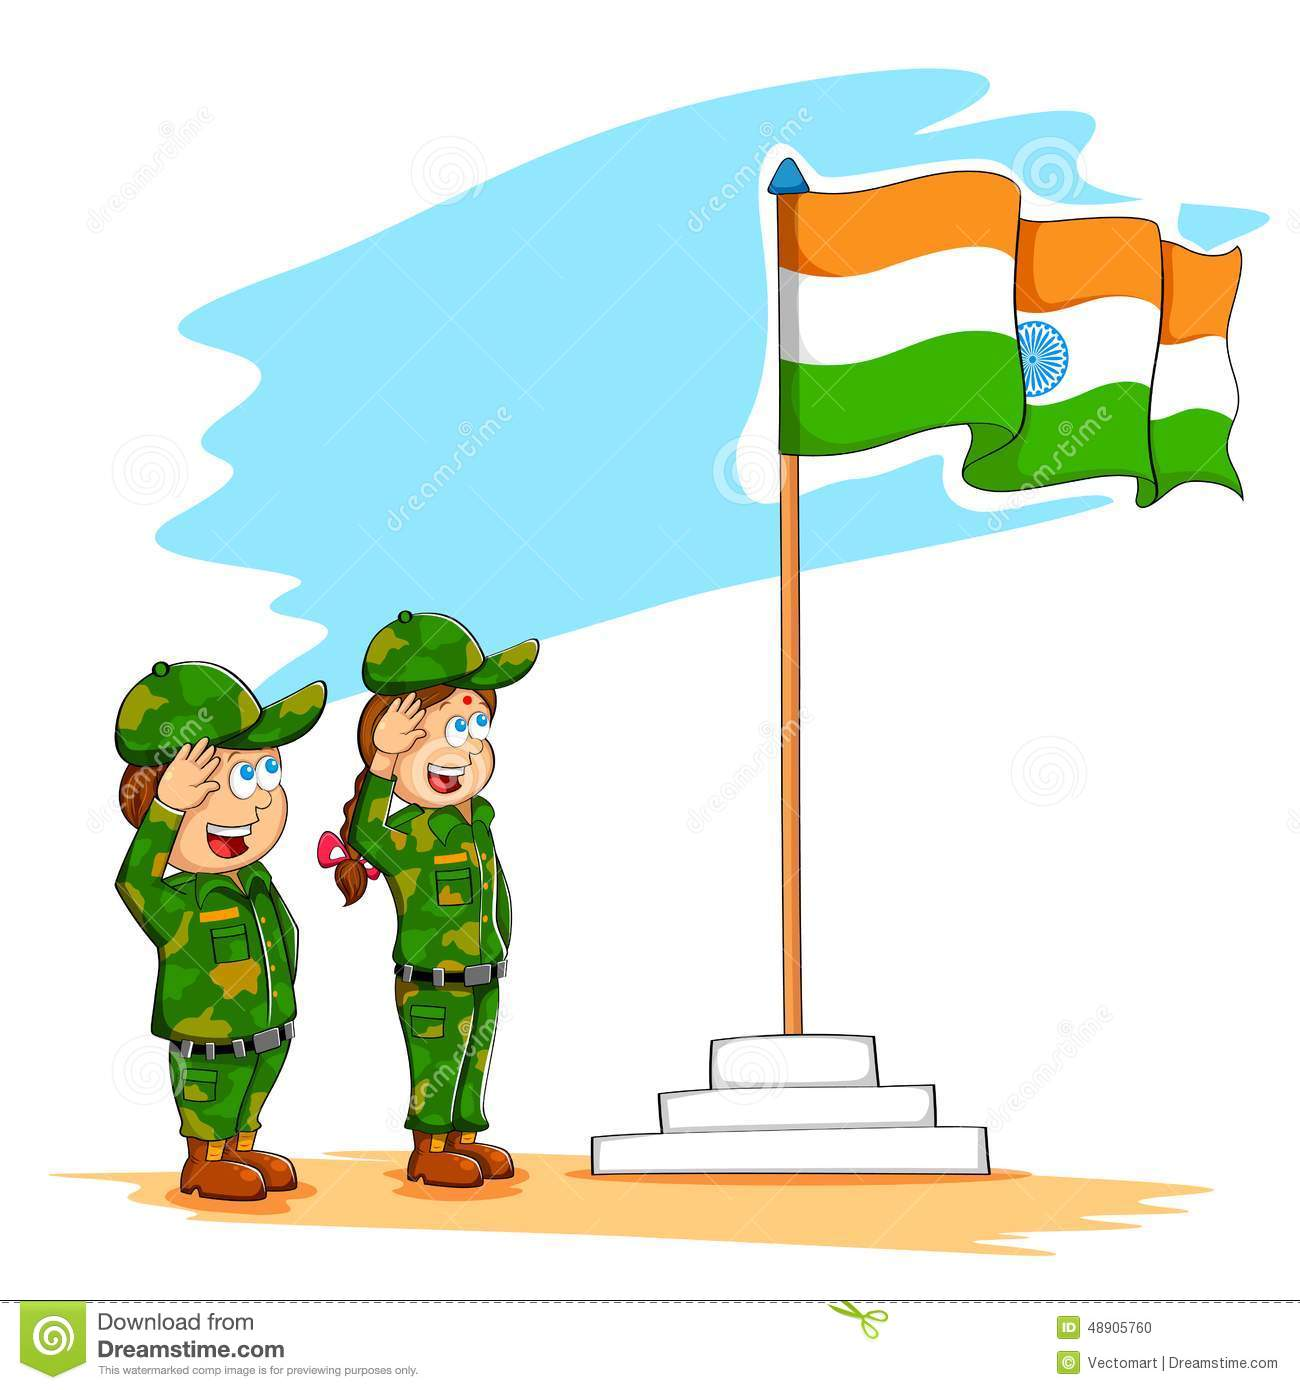 Indian flag with children clipart.